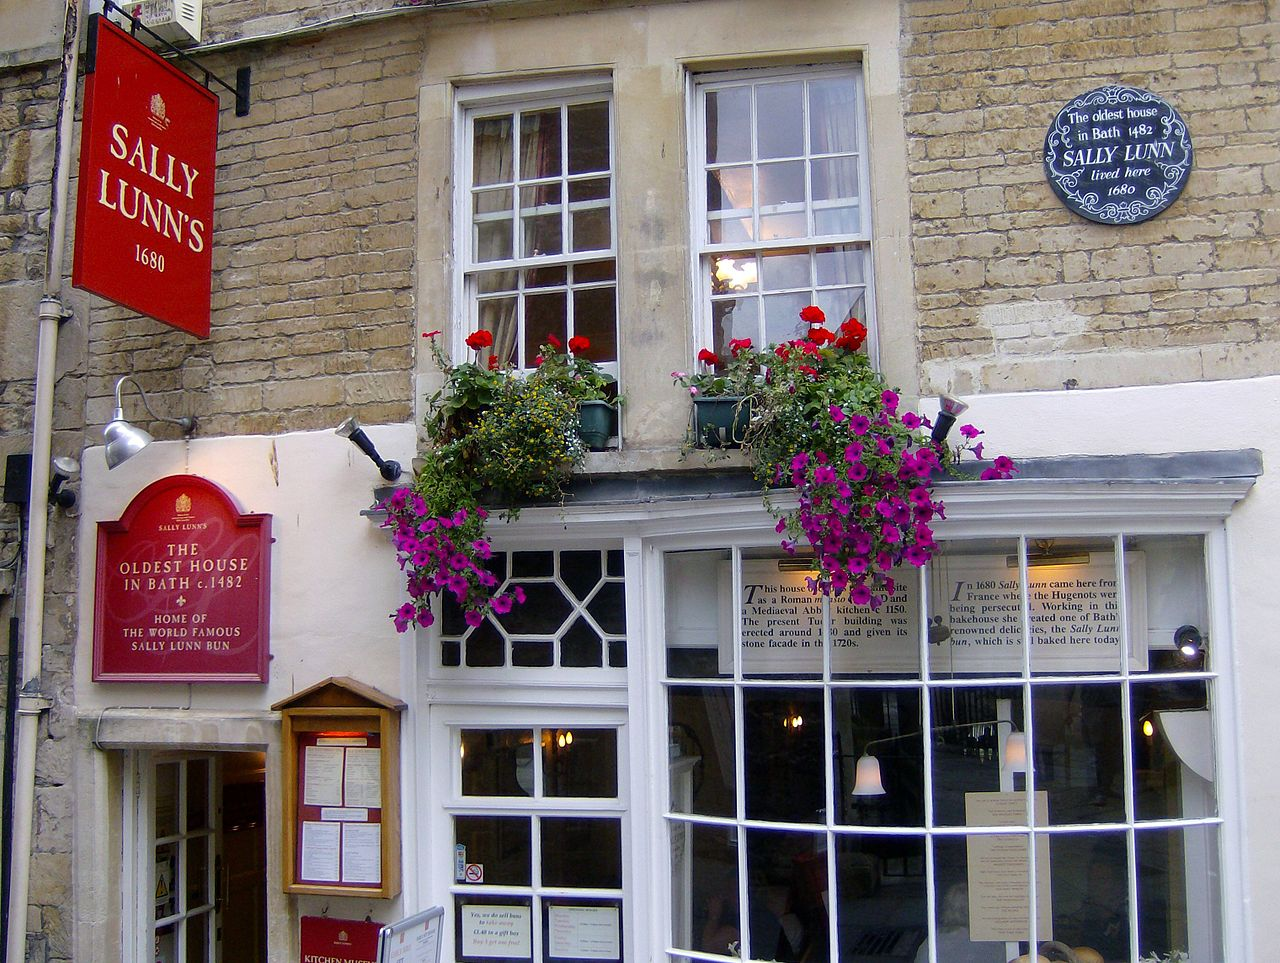 Sally Lunn's House, the oldest house in Bath, home of the Sally Lunn Bun. Credit Fahdshariff